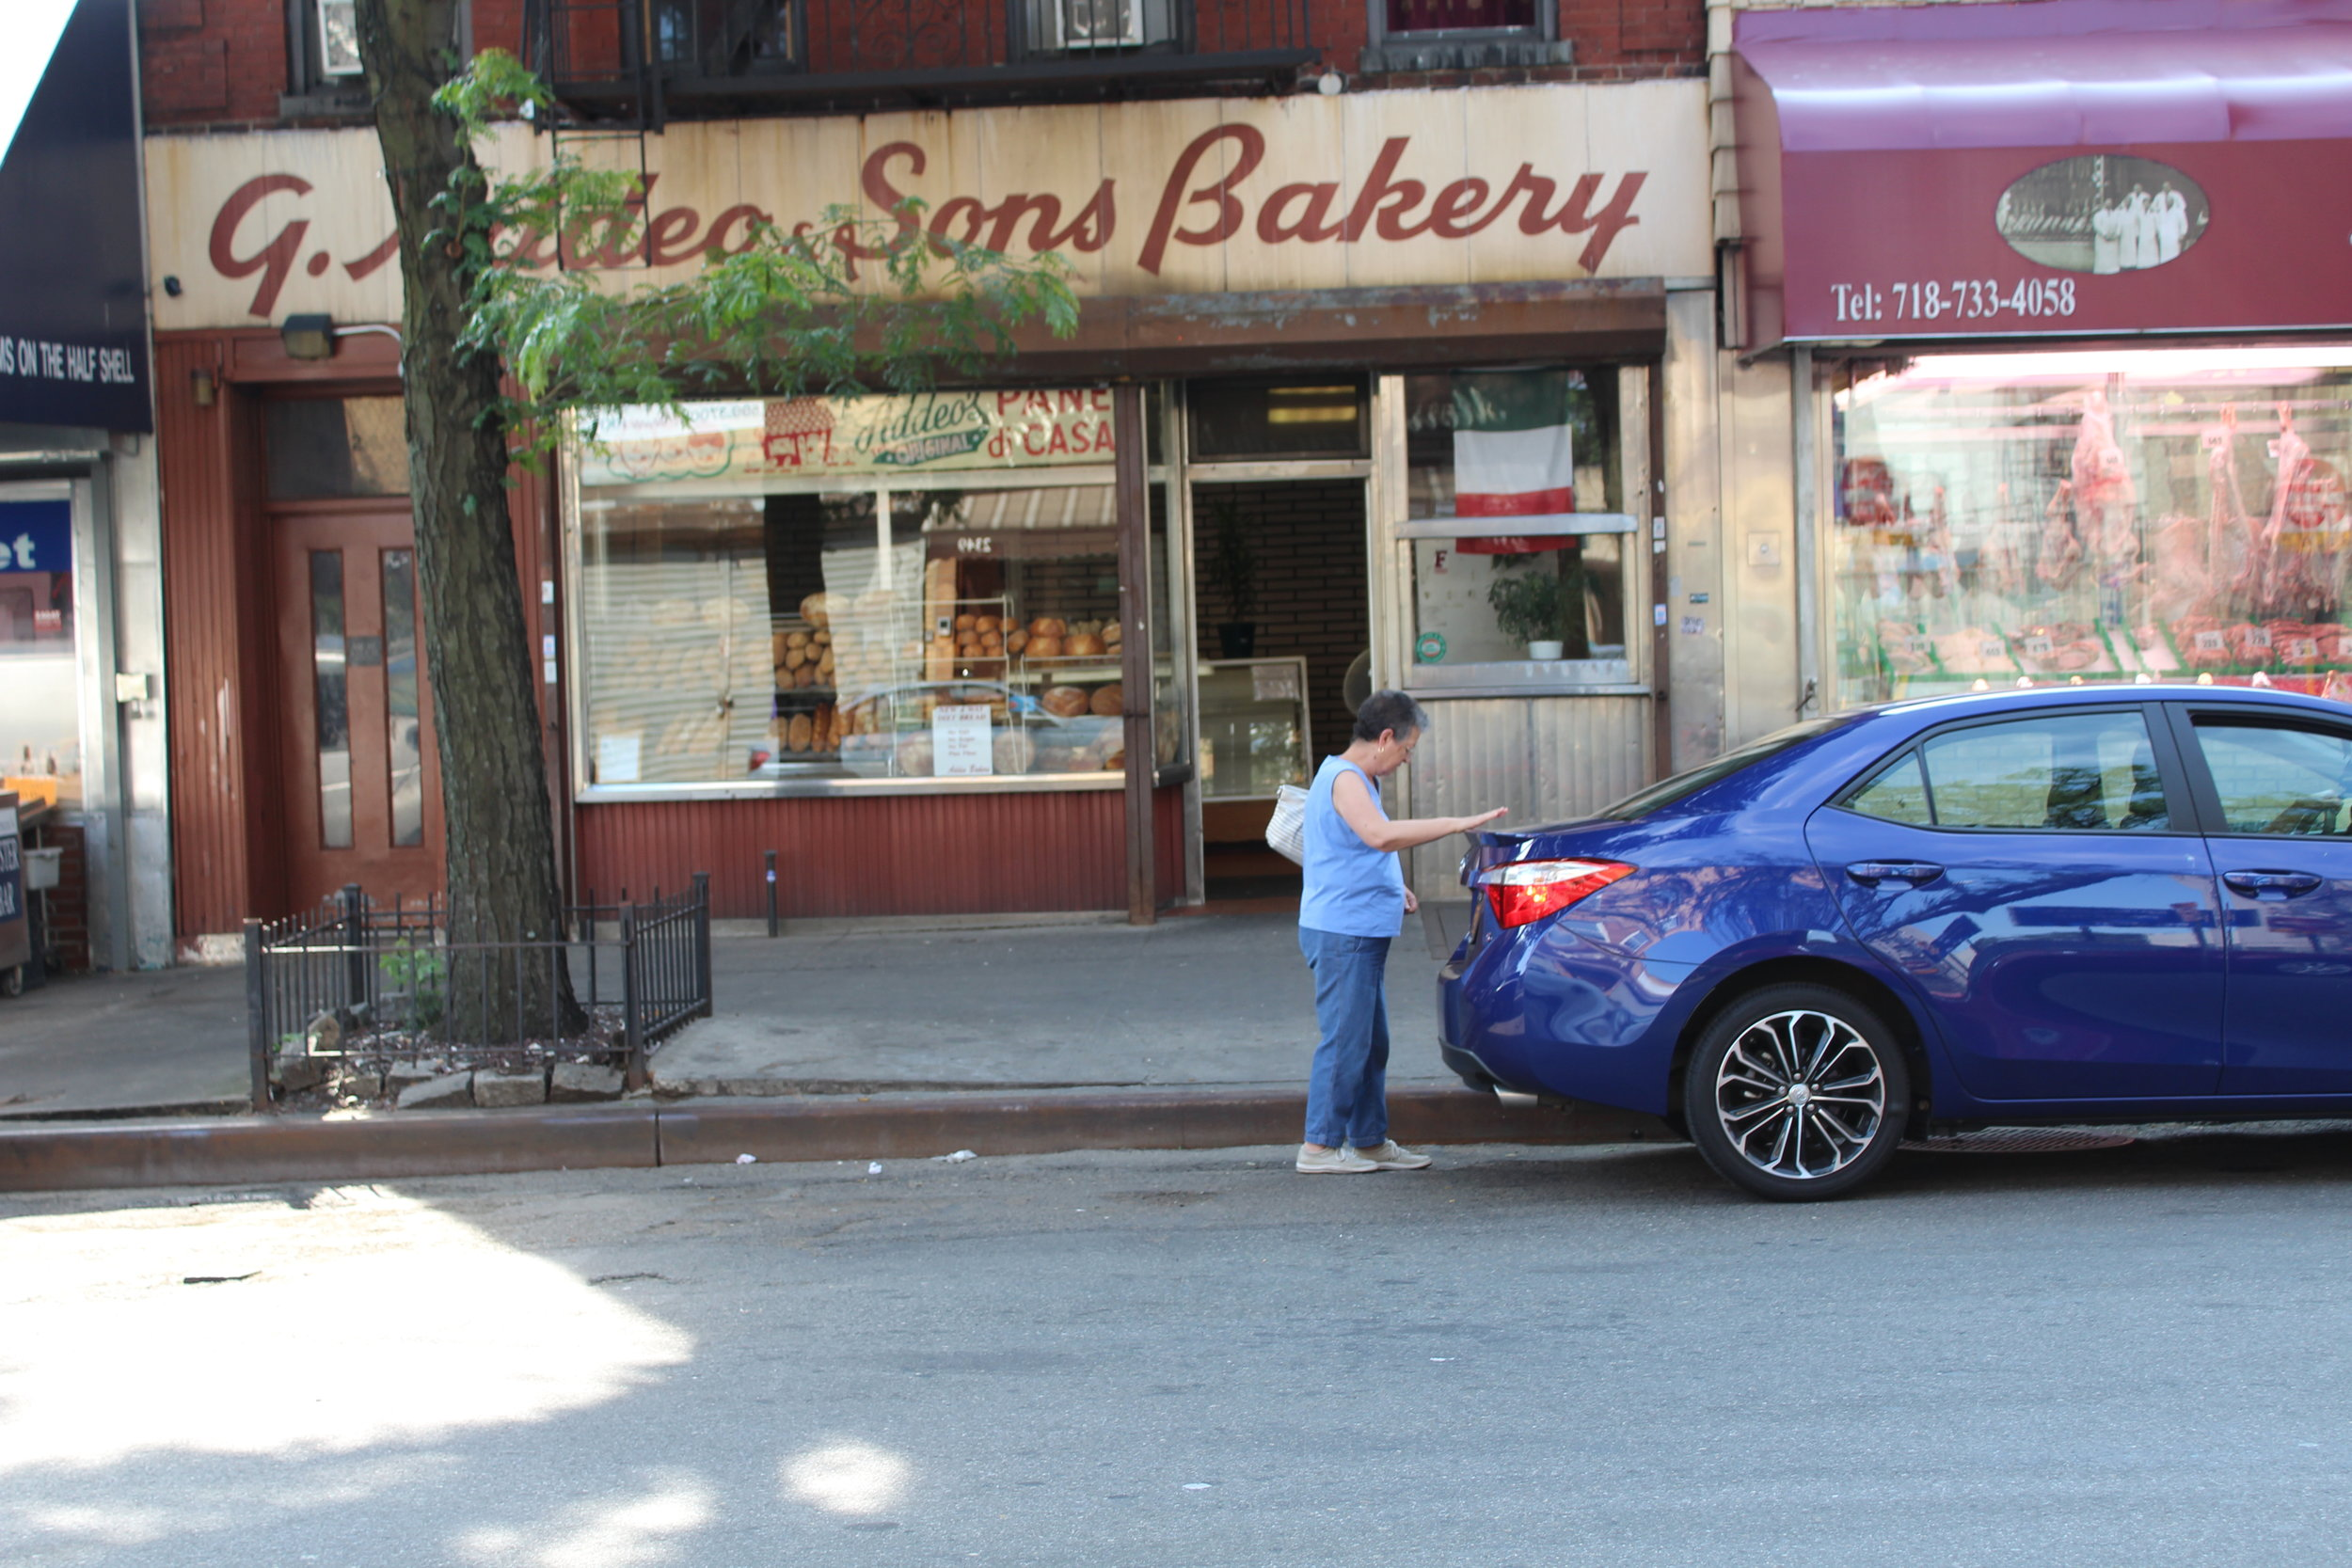 Addeo Bakers has a storefront on Arthur Avenue another on Hughes Avenue where the bread is also baked.